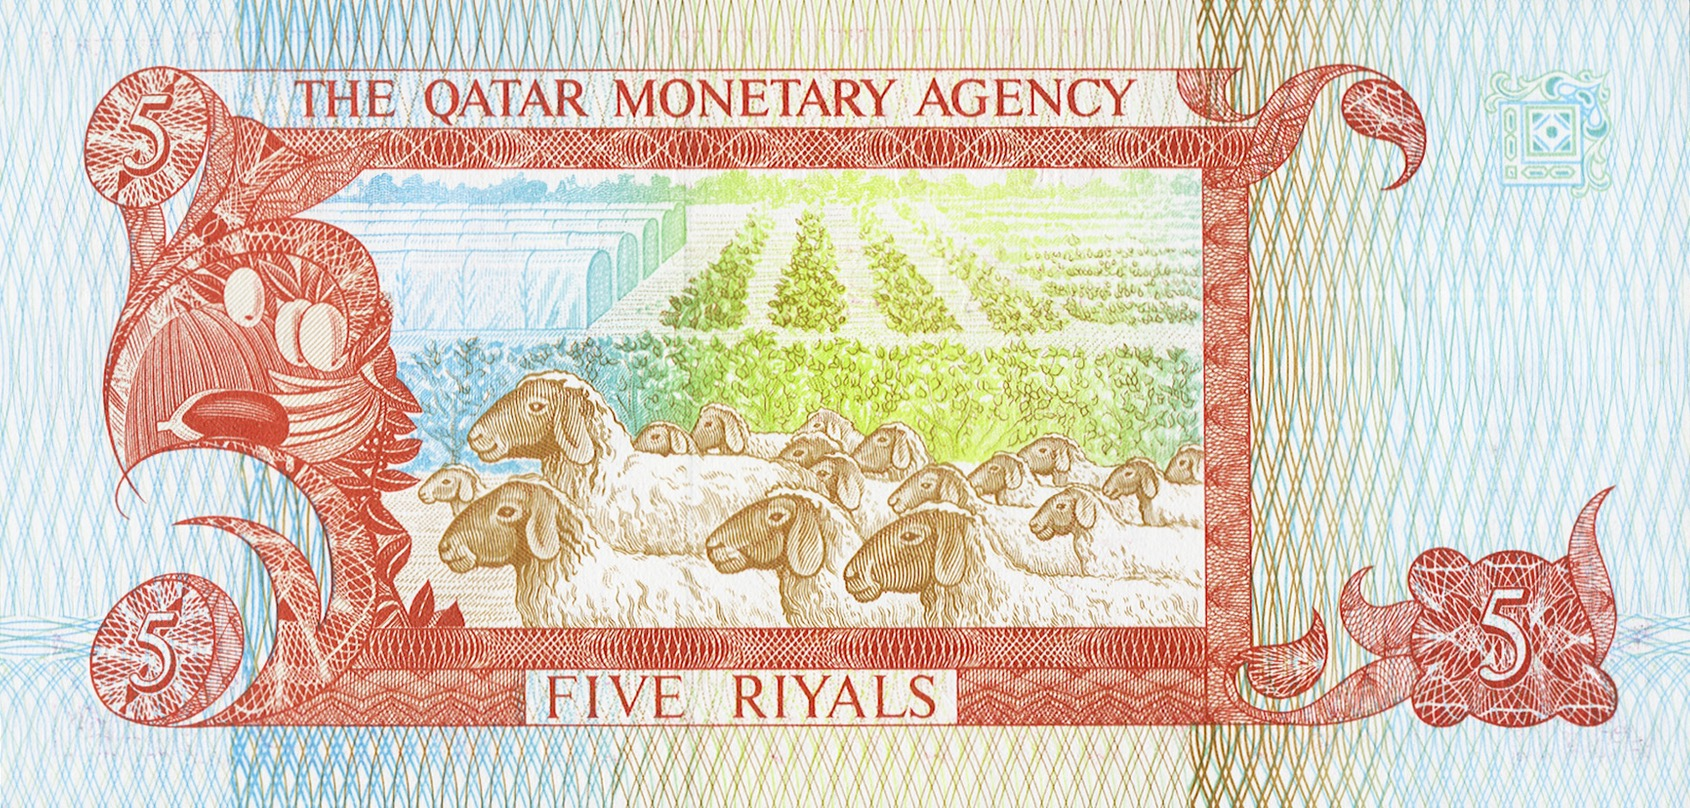 5 Qatari Riyals banknote (Second Issue)